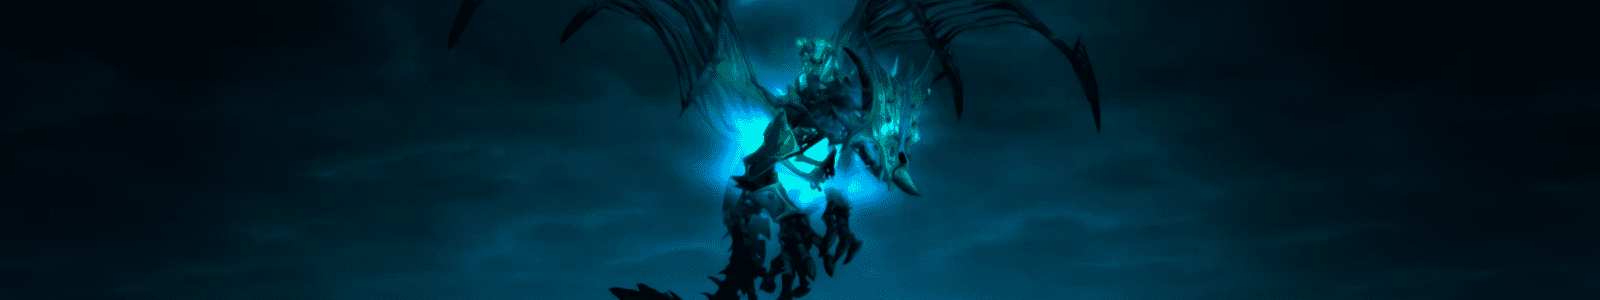 Bloodbathed Frostbrood Vanquisher